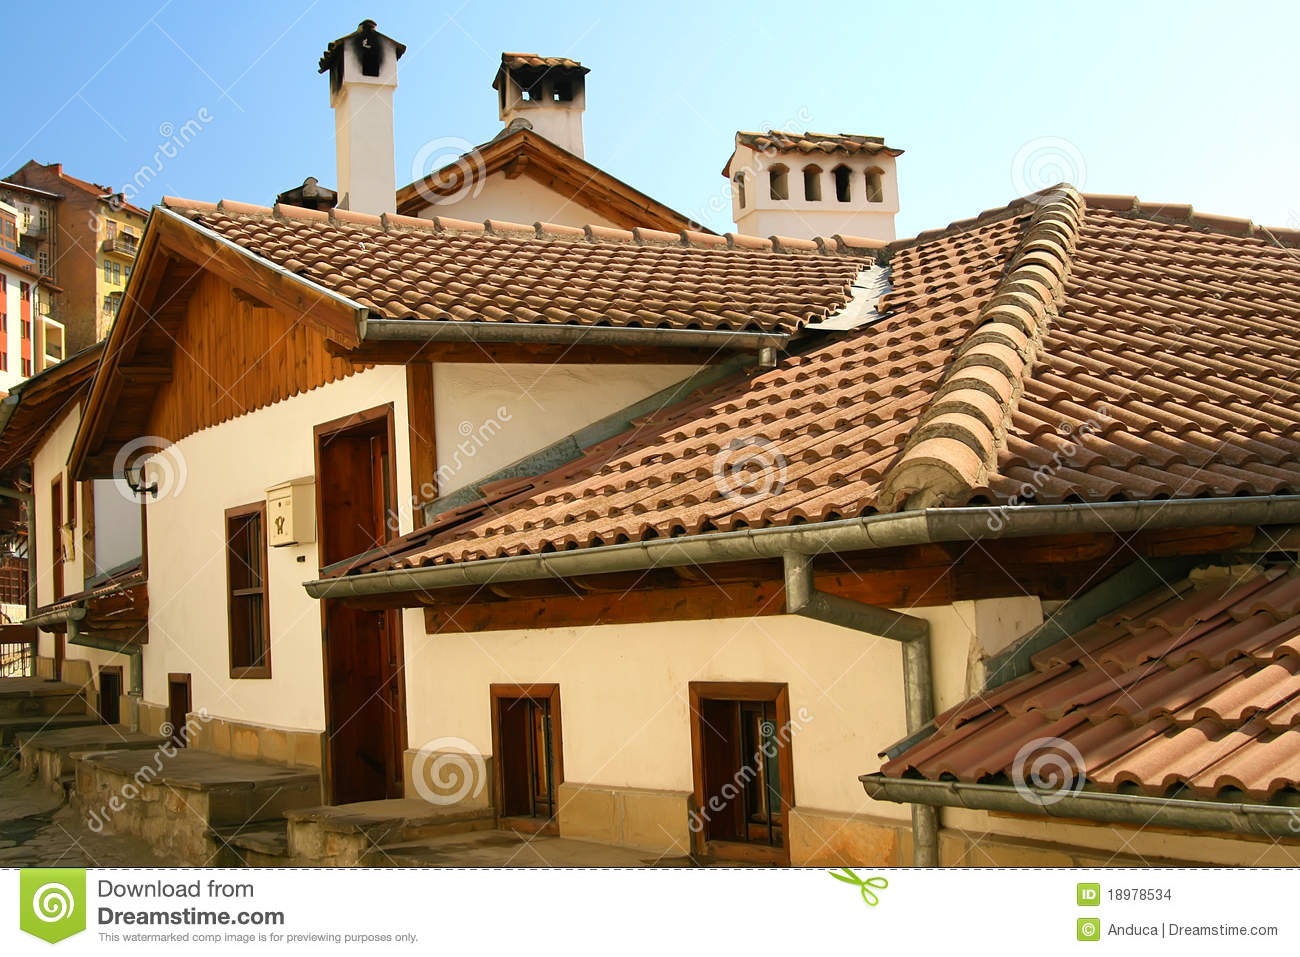 Old Houses And Roofs With Ceramic Tiles Stock Photo